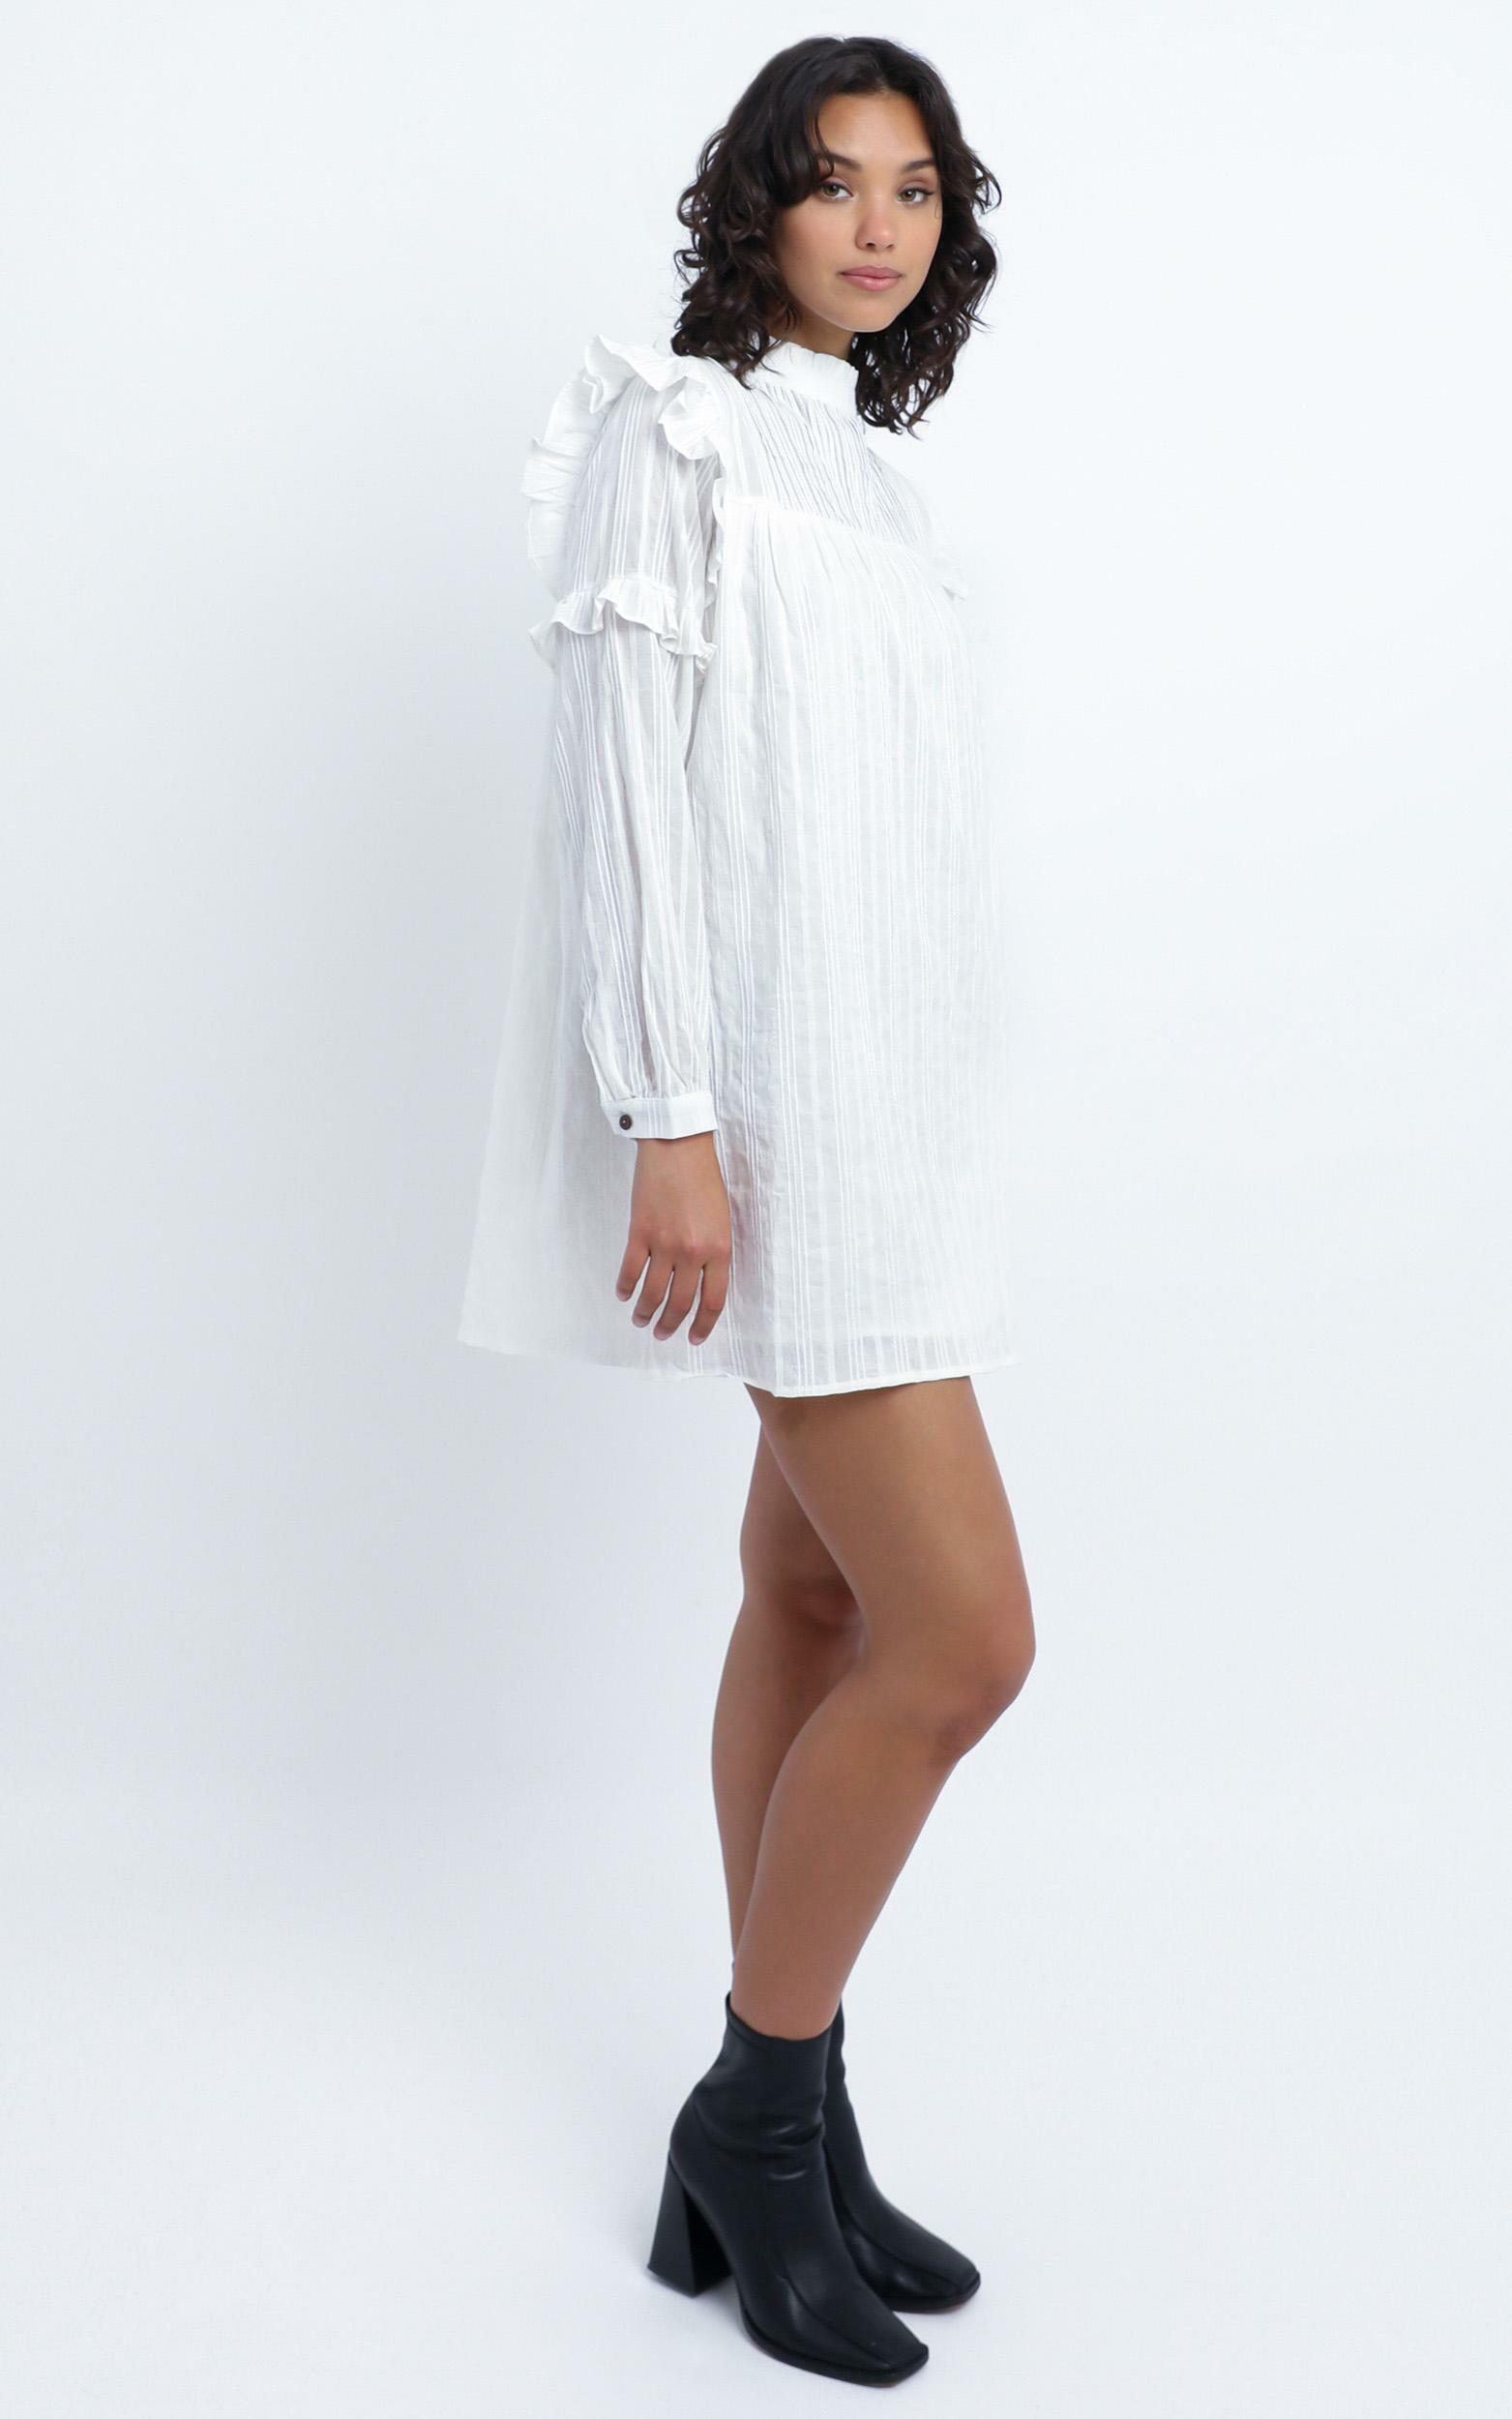 Noemi dress in White - 14 (XL), White, hi-res image number null